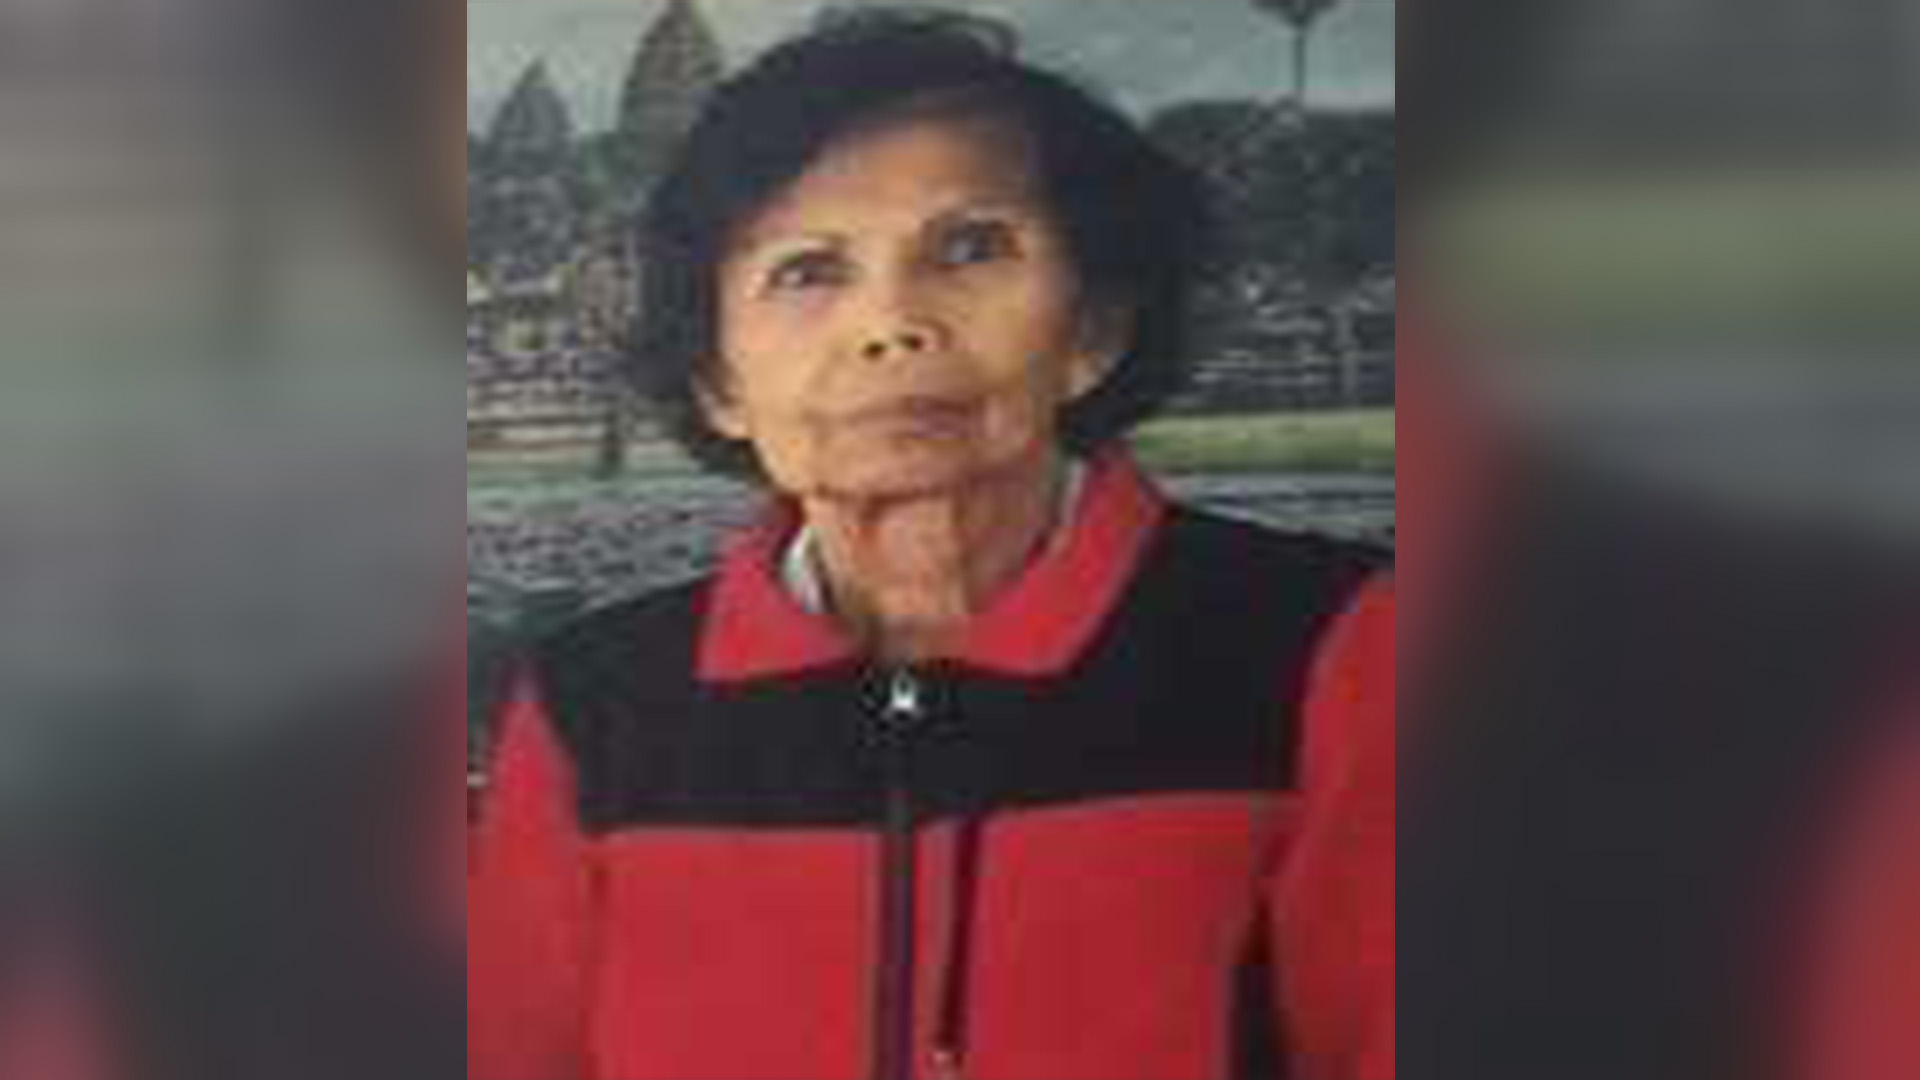 San Jose police searching for elderly woman considered at-risk